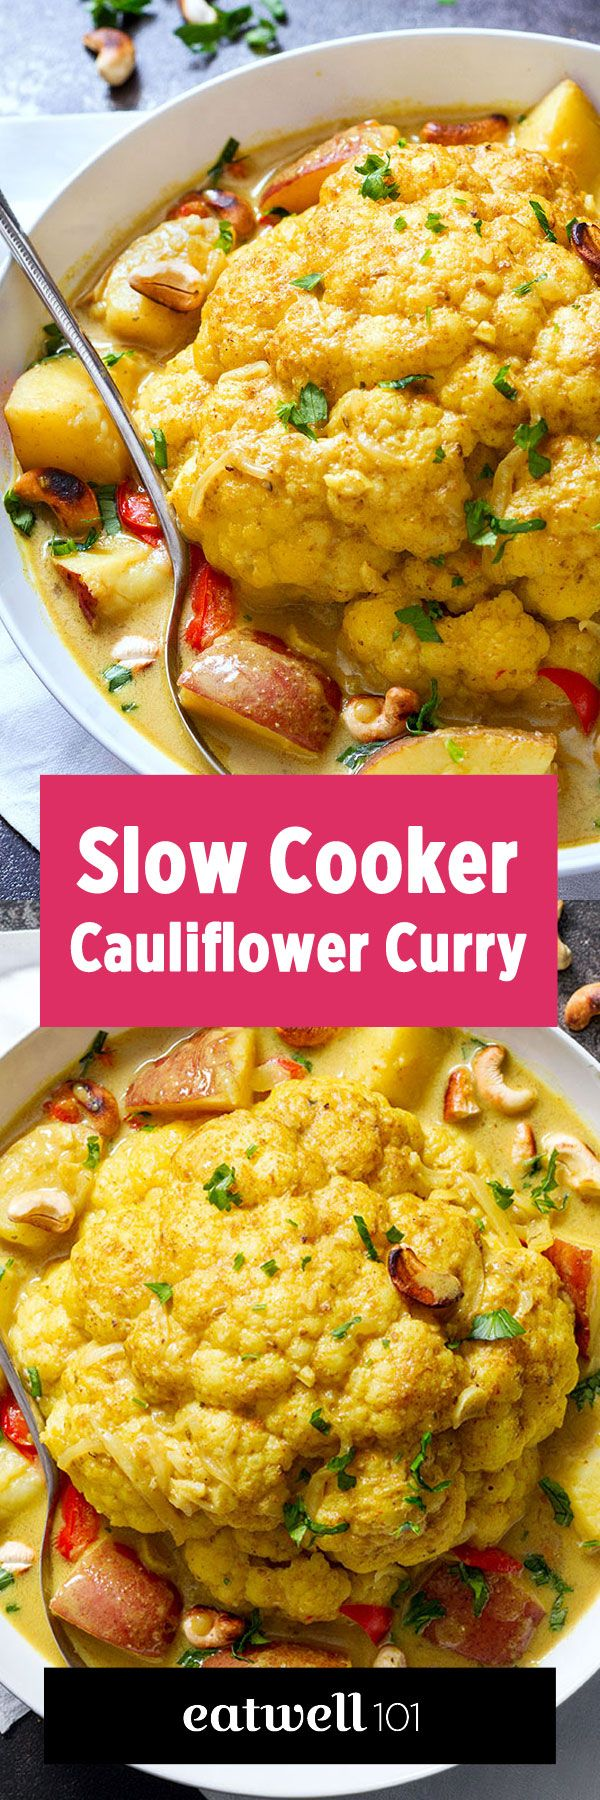 A slow-cooked, coconut-based whole cauliflower curry is taken up a notch with the addition of sweet red peppers and chopped potatoes. eatwell101.com